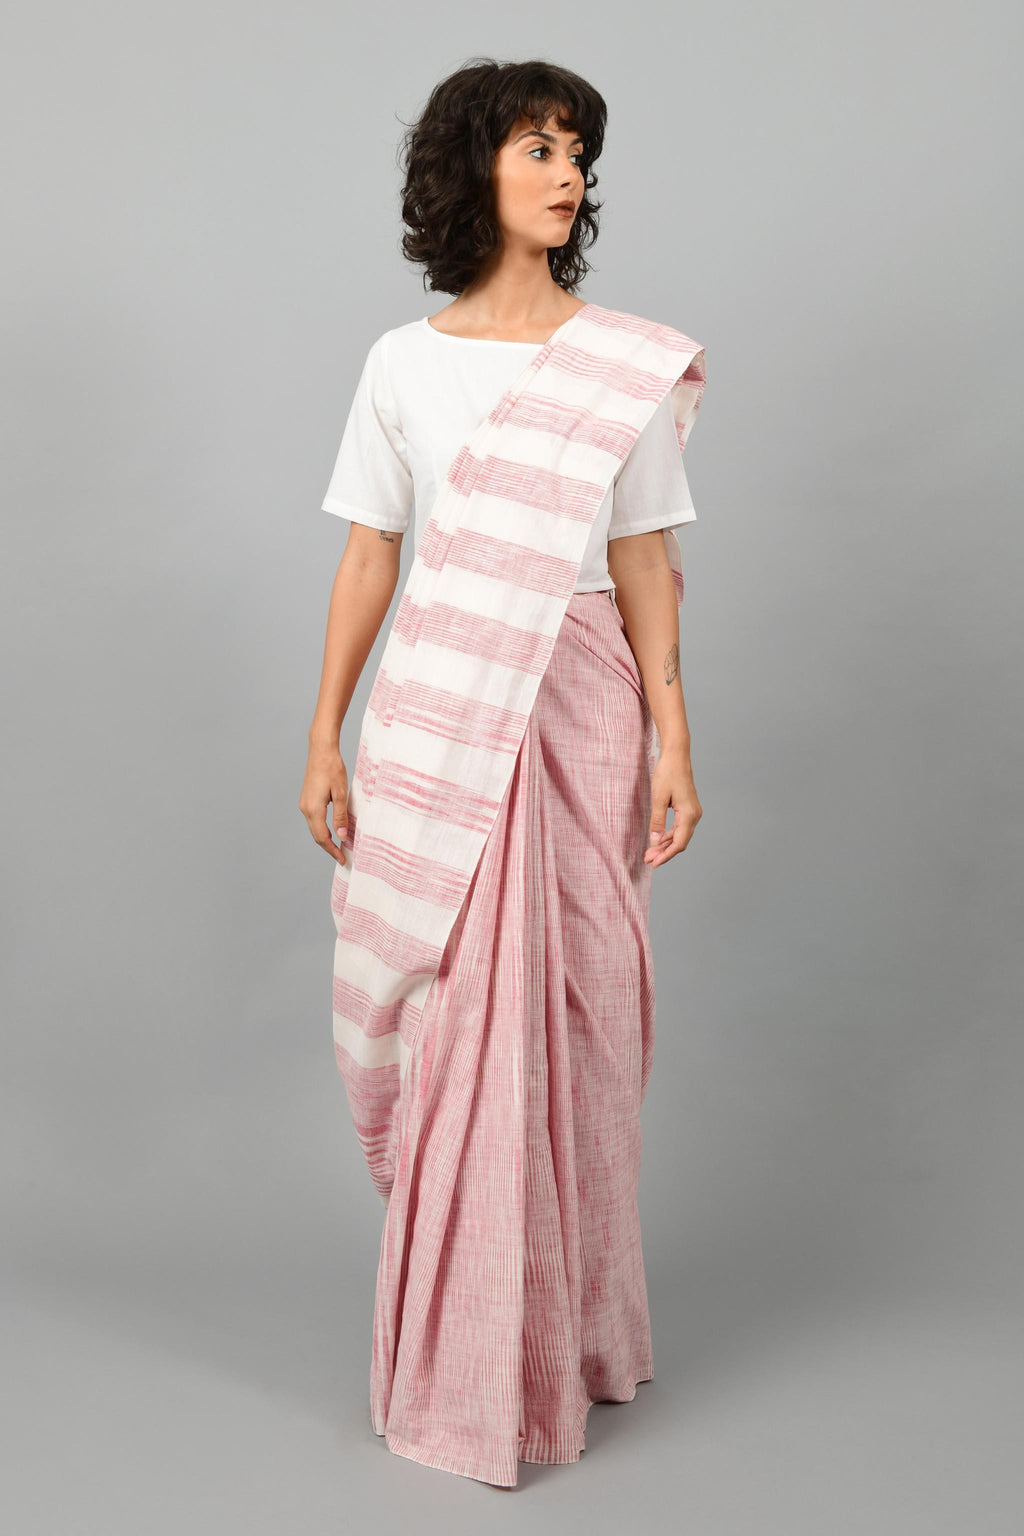 Front pose of a female womenswear fashion model draped in a red & white space dyed homespun and handwoven cotton sari by Cotton Rack.